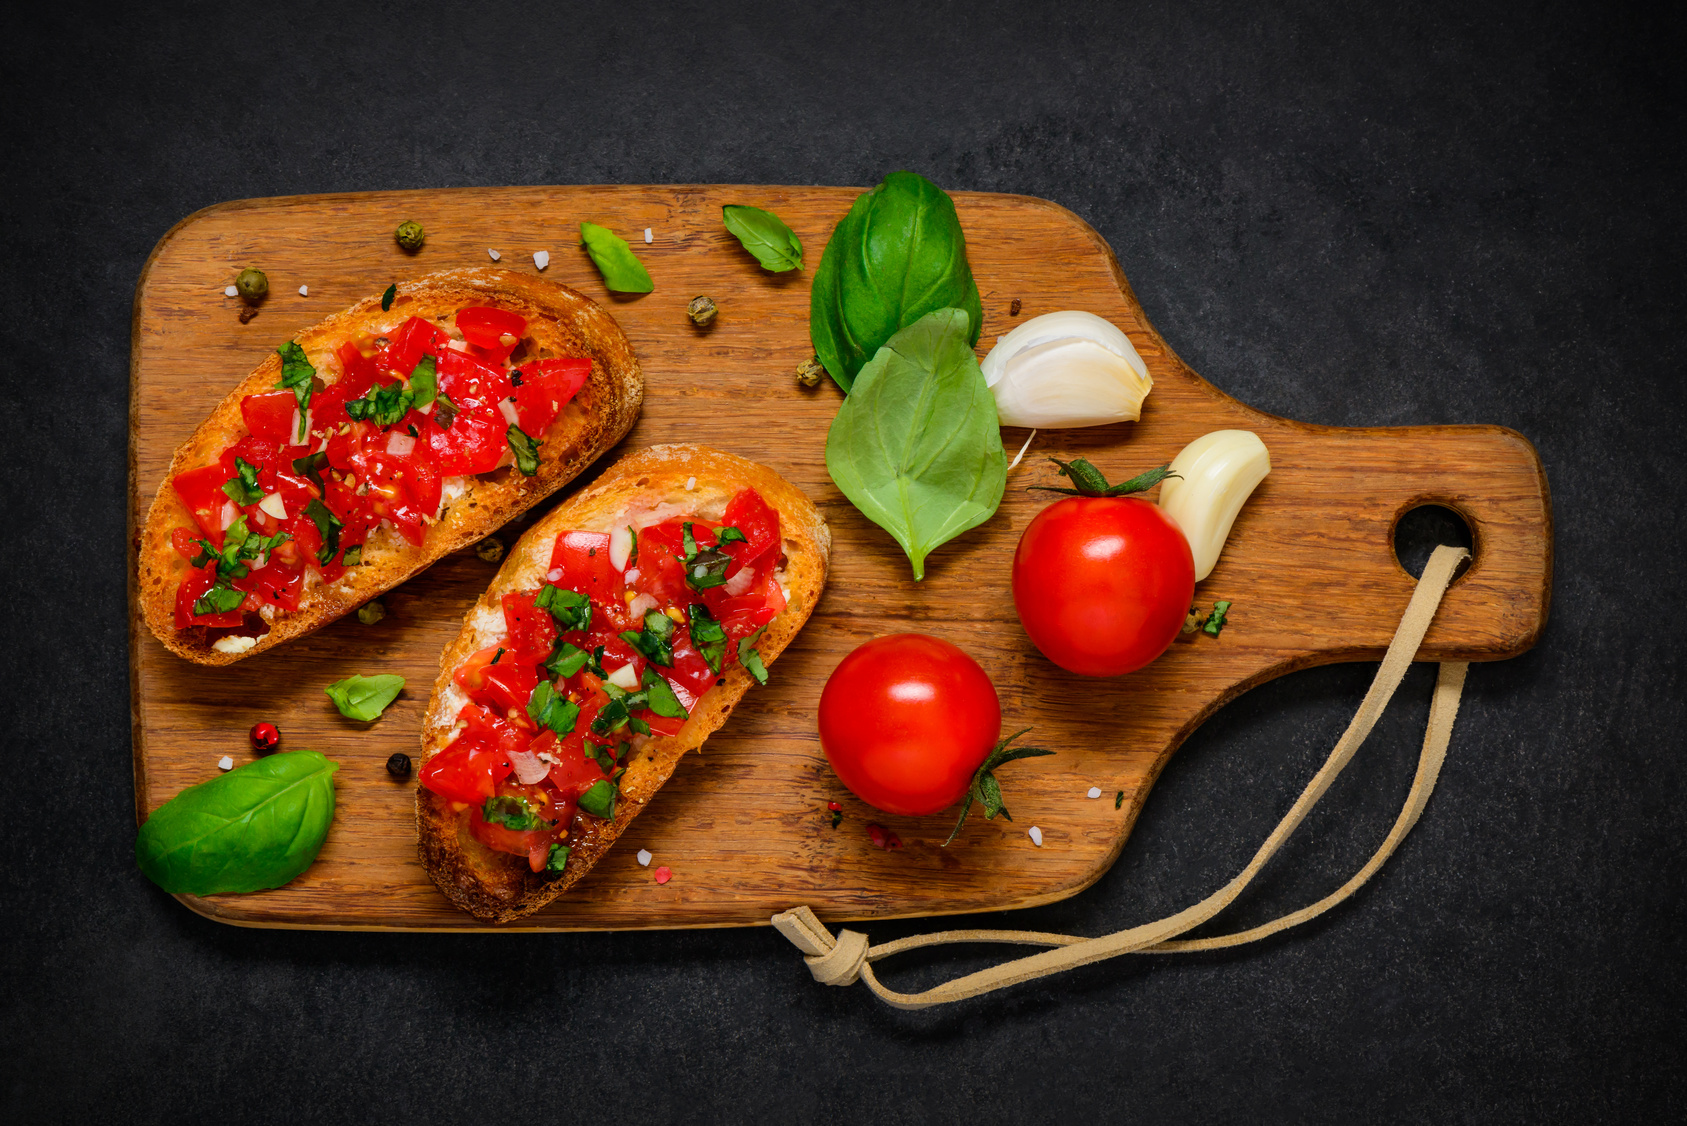 Simple meals - Bruschetta with Fresh Tomato and Basil